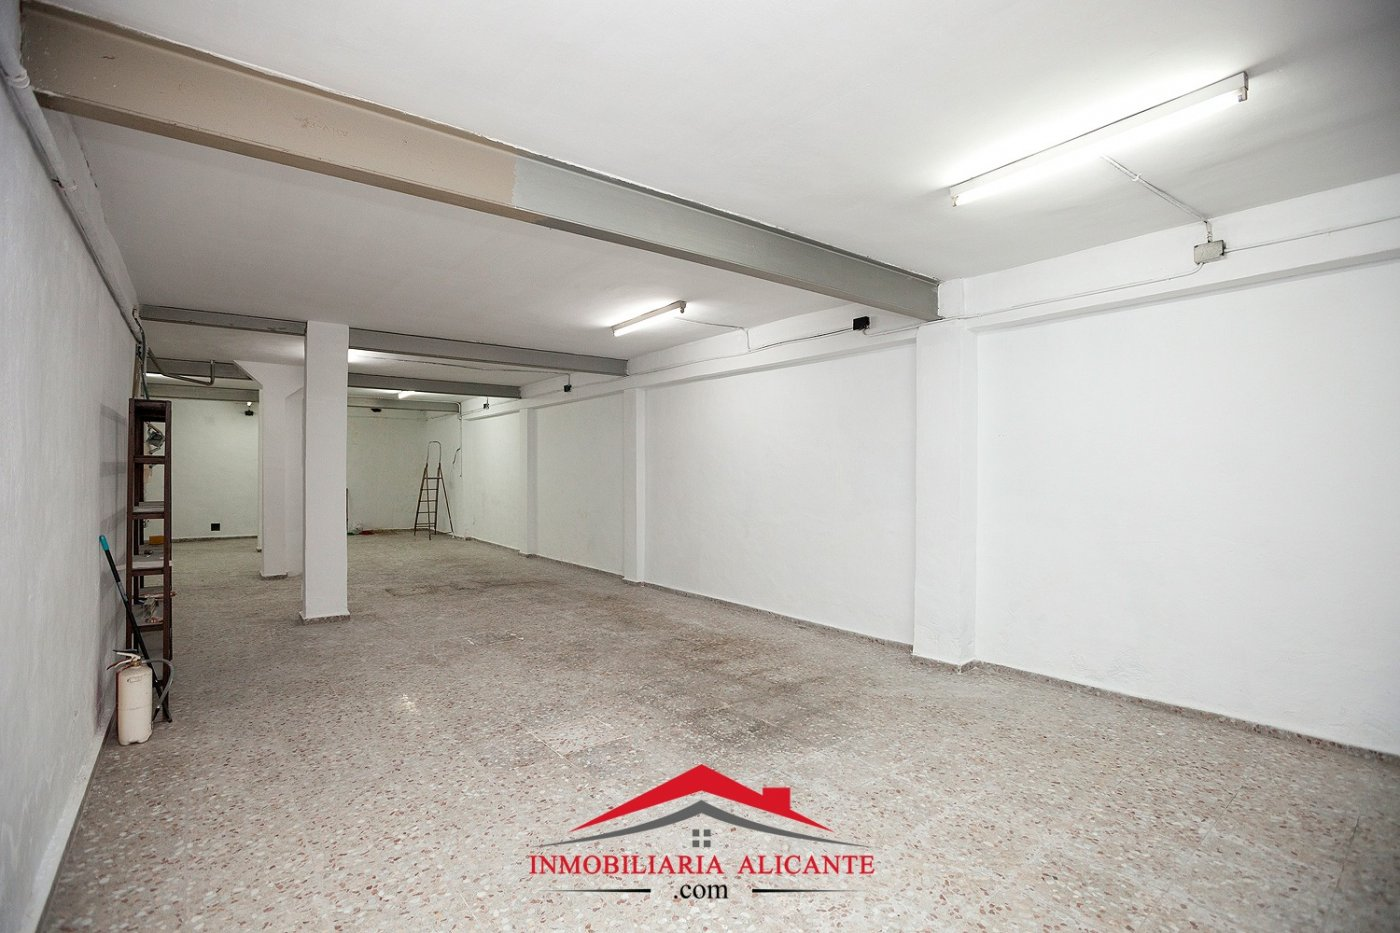 local-comercial en alicante · plaza-de-toros---mercado-central 45000€